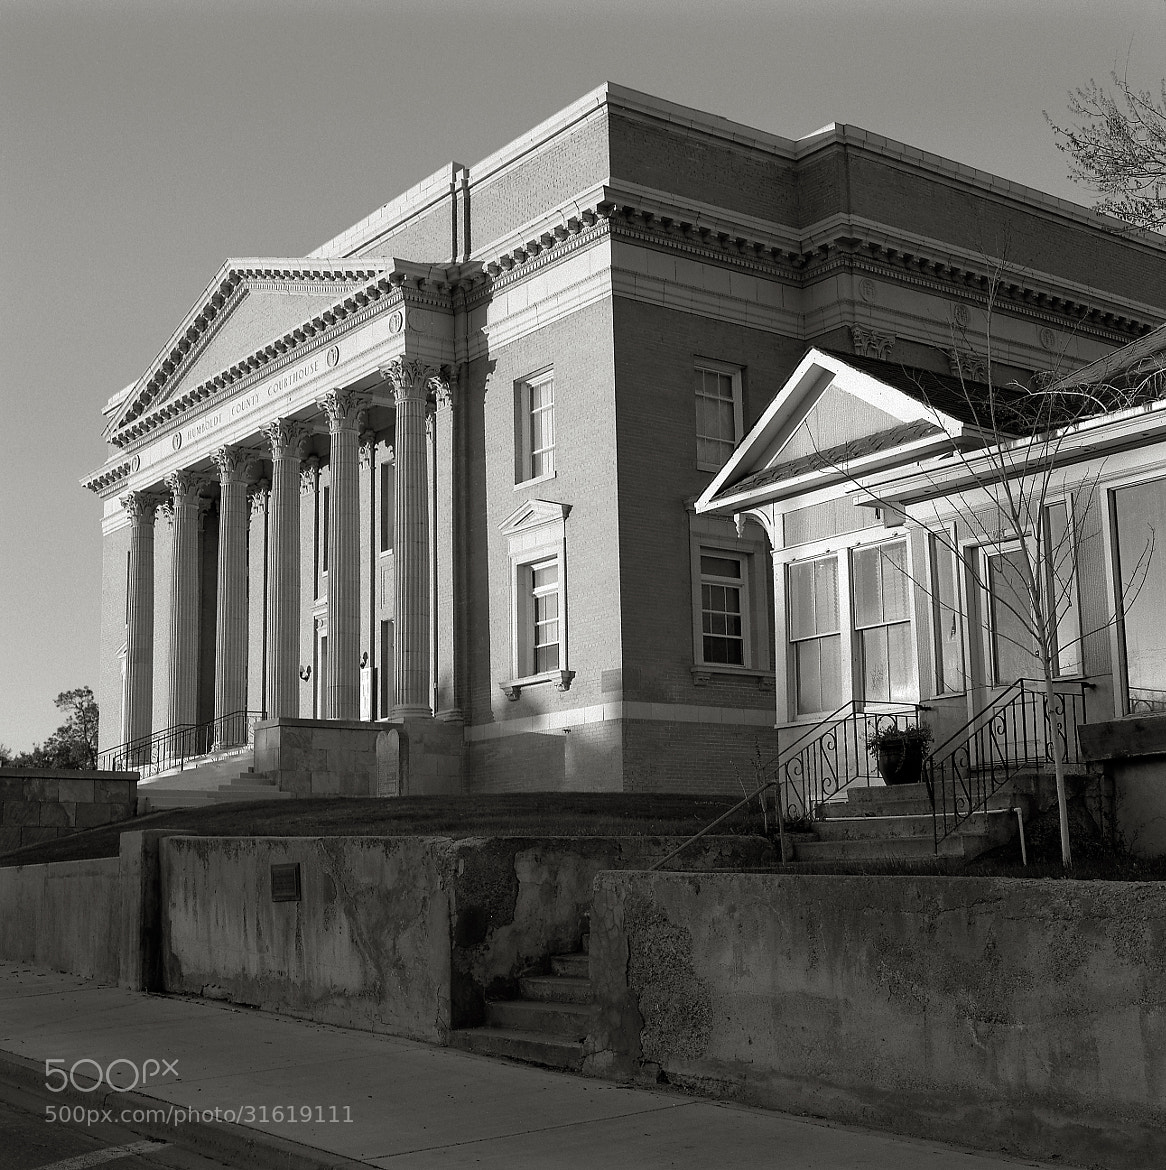 Photograph Courthouse and Home, early Morning, Winnemucca, Nevada by Austin Granger on 500px